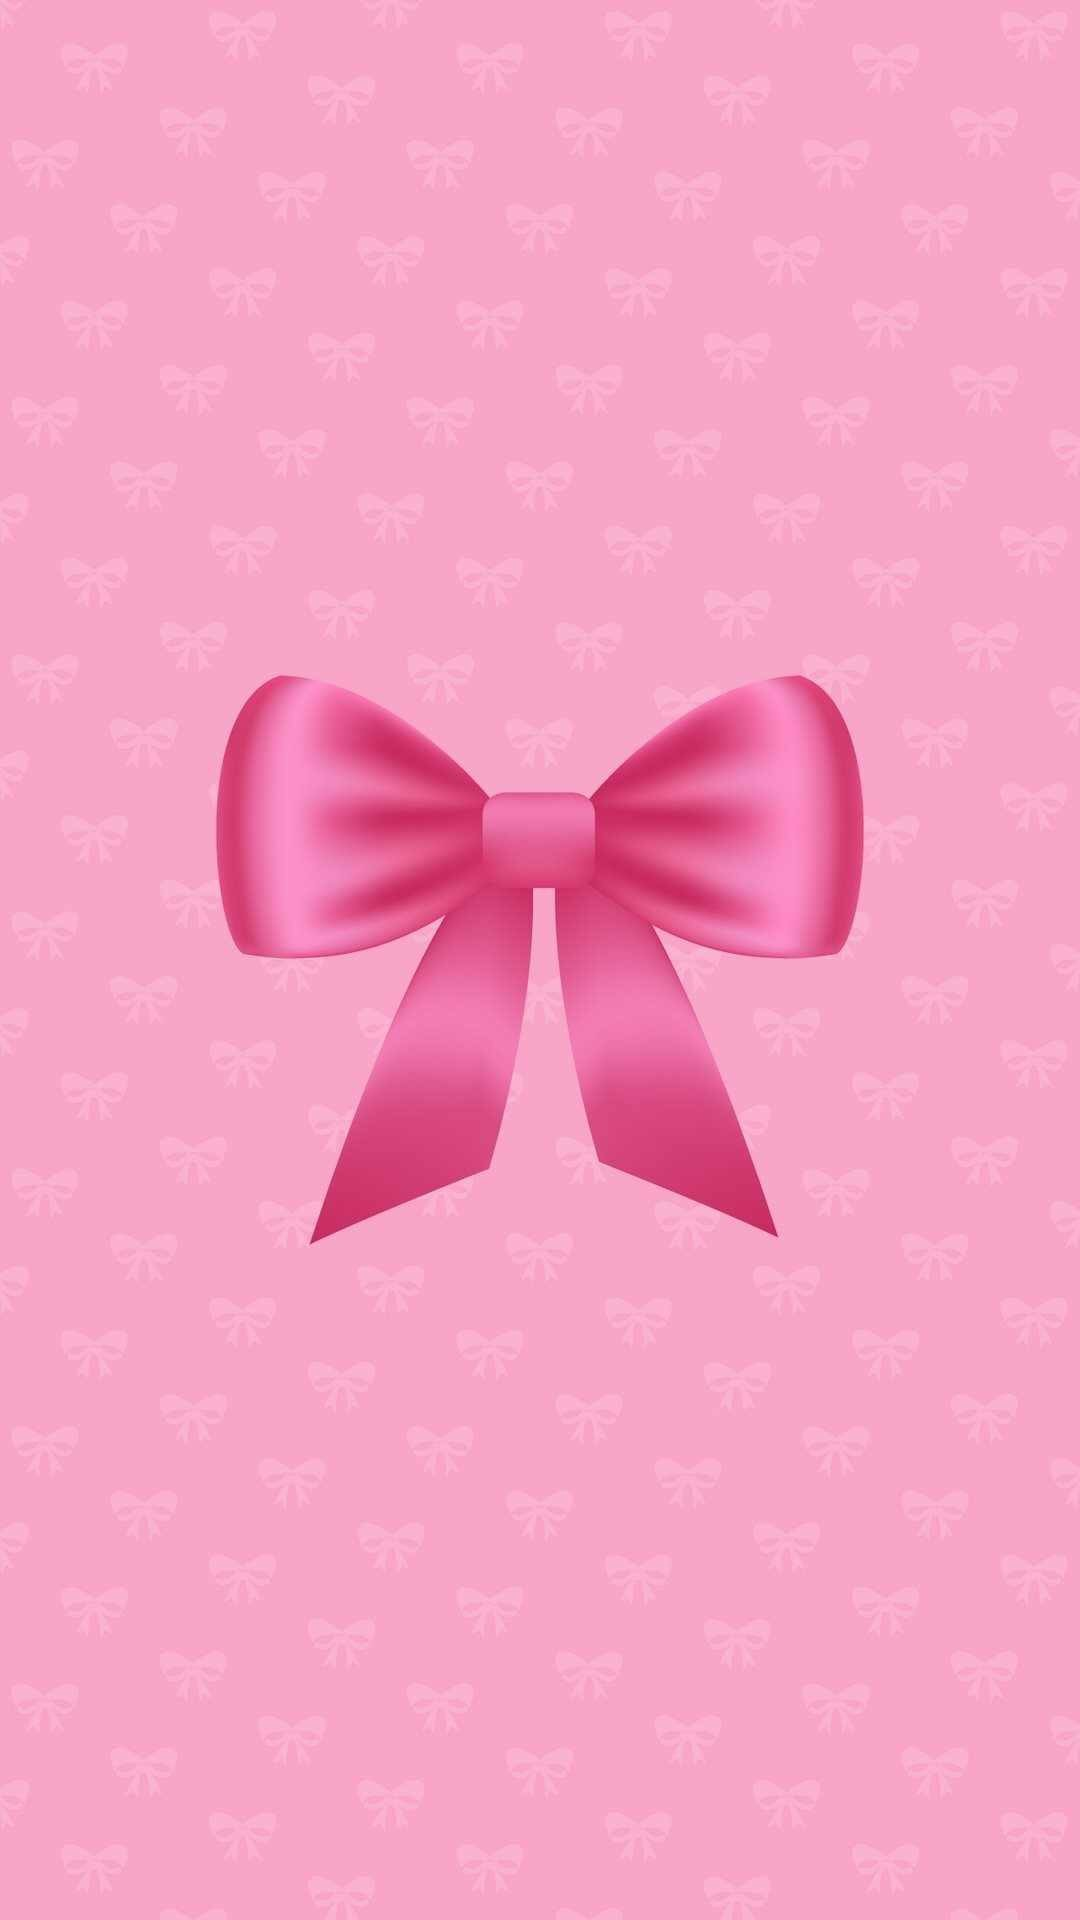 Cute Hollographic Wallpapers Cute Light Pink Wallpapers 57 Images